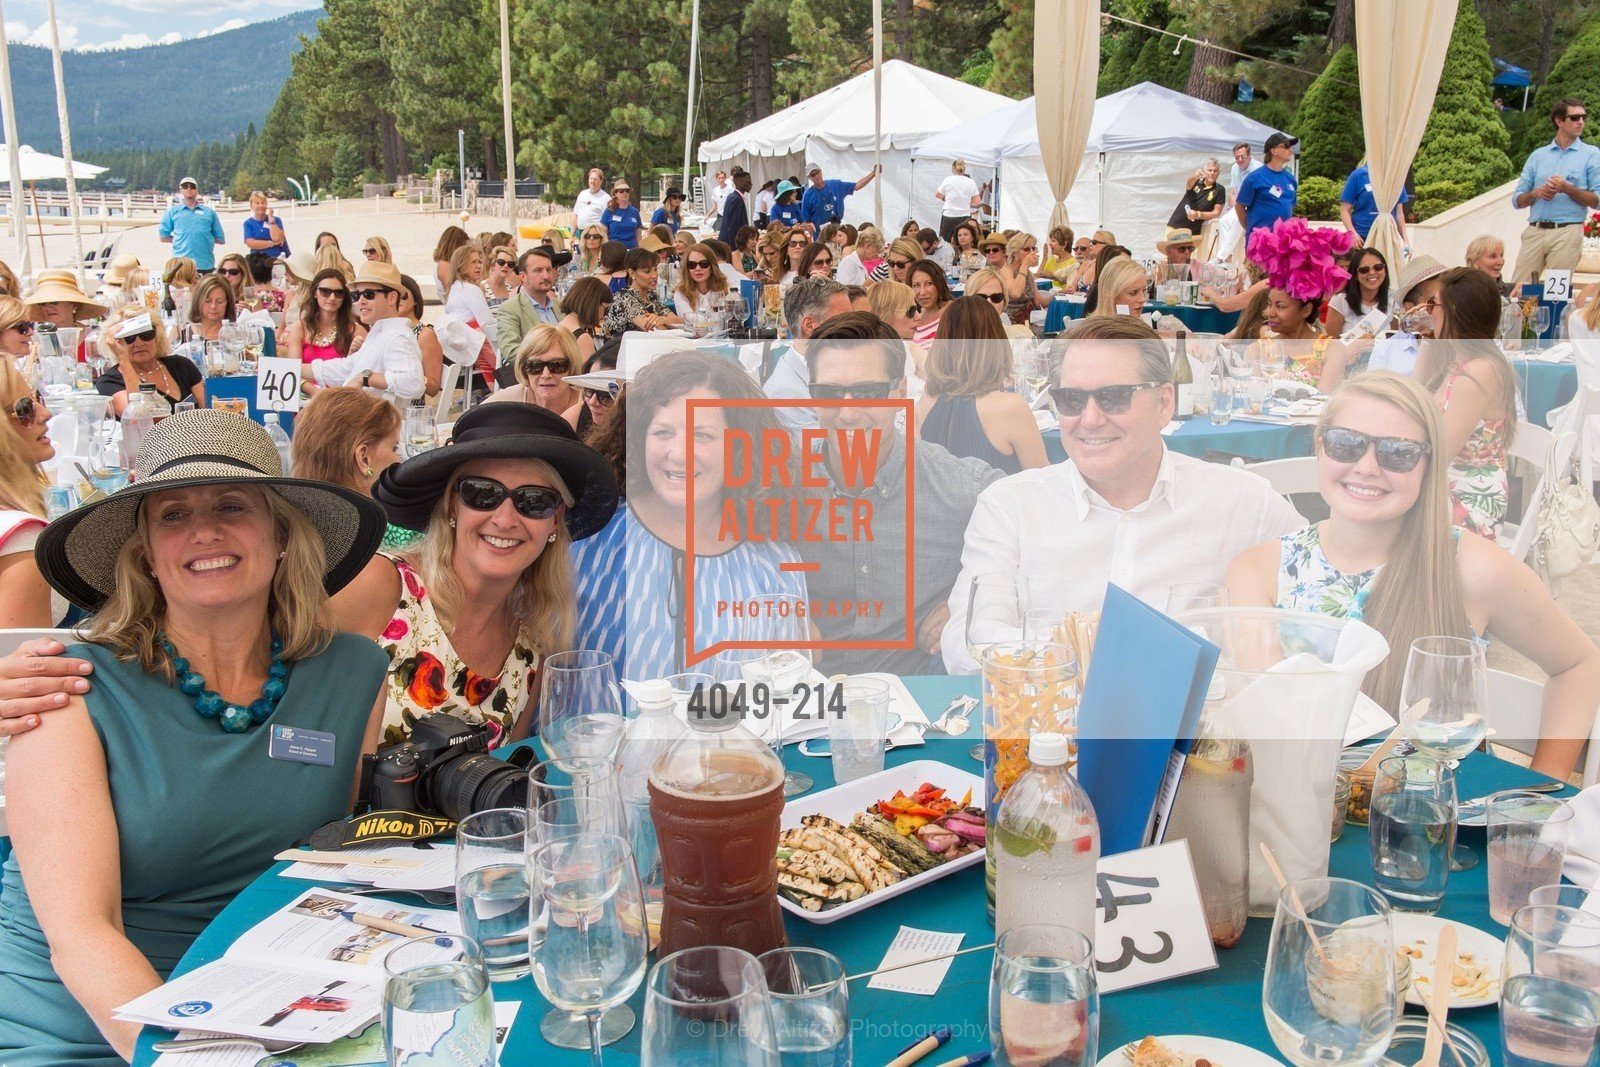 Anne Harper, Jonny Moseley, Saks Fifth Avenue and The League to Save Lake Tahoe Present Fashion on the Lake, Private Residence, August 1st, 2015,Drew Altizer, Drew Altizer Photography, full-service agency, private events, San Francisco photographer, photographer california